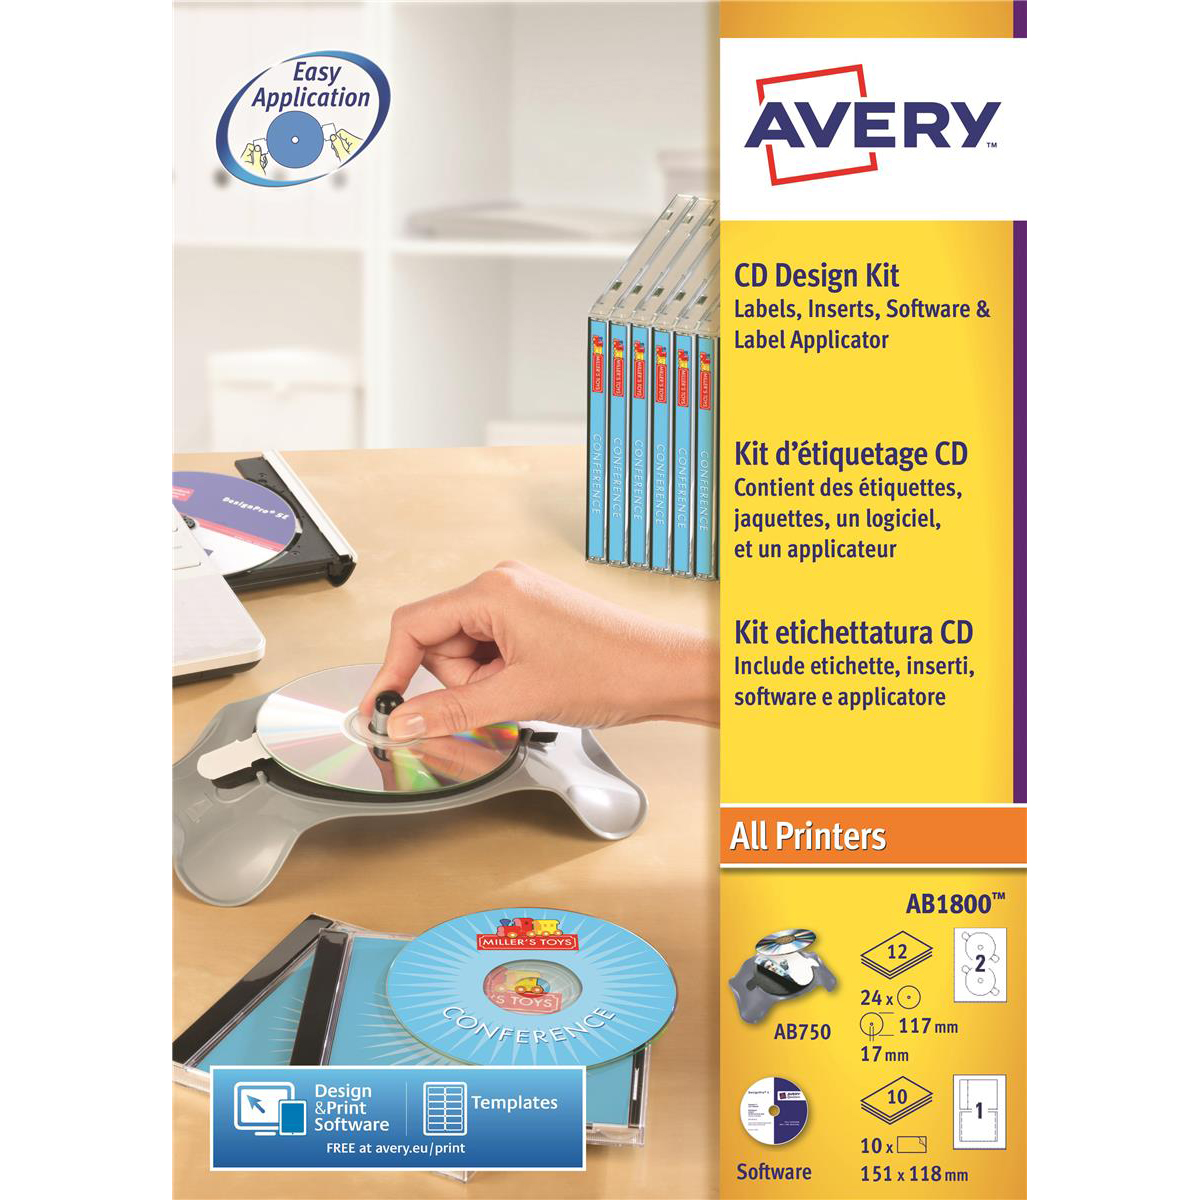 Image for Avery AfterBurner CD/DVD System AB1800